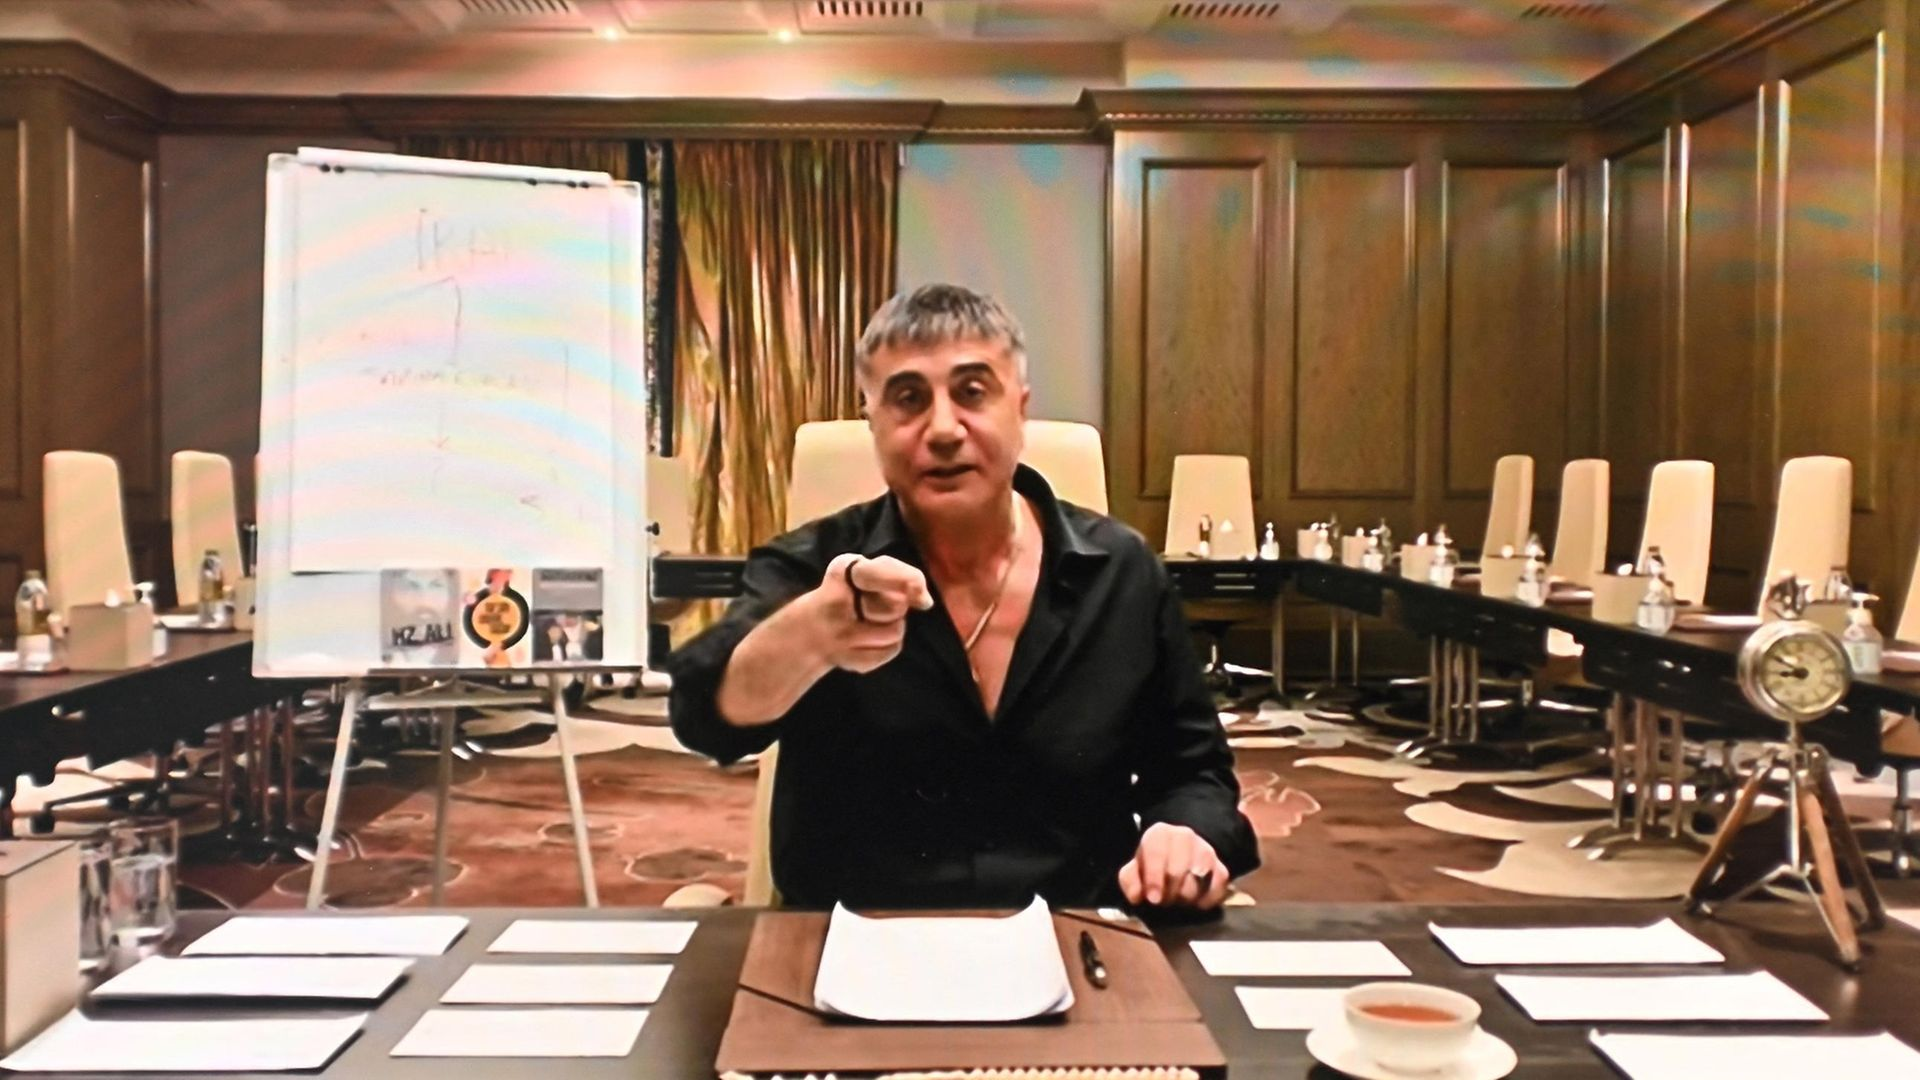 Sedat Peker speaking on his YouTube channel, where he has been broadcasting extraordinary allegations about senior figures in Turkish politics - Credit: AFP via Getty Images